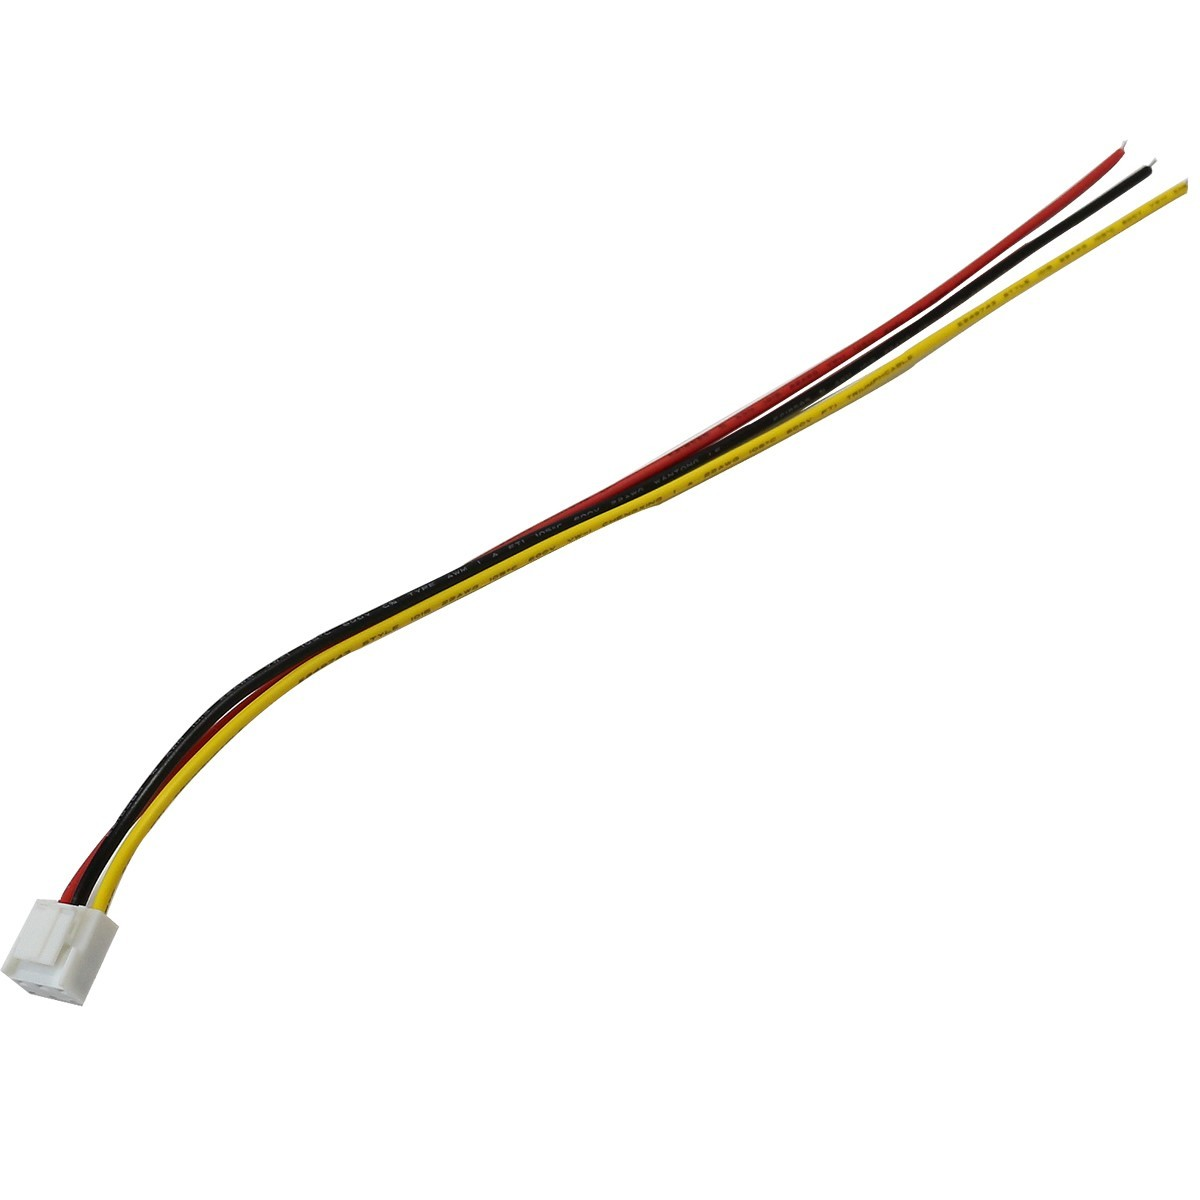 VH 3.96mm cable with 3 pin female connector 30cm 22AWG (Unit)